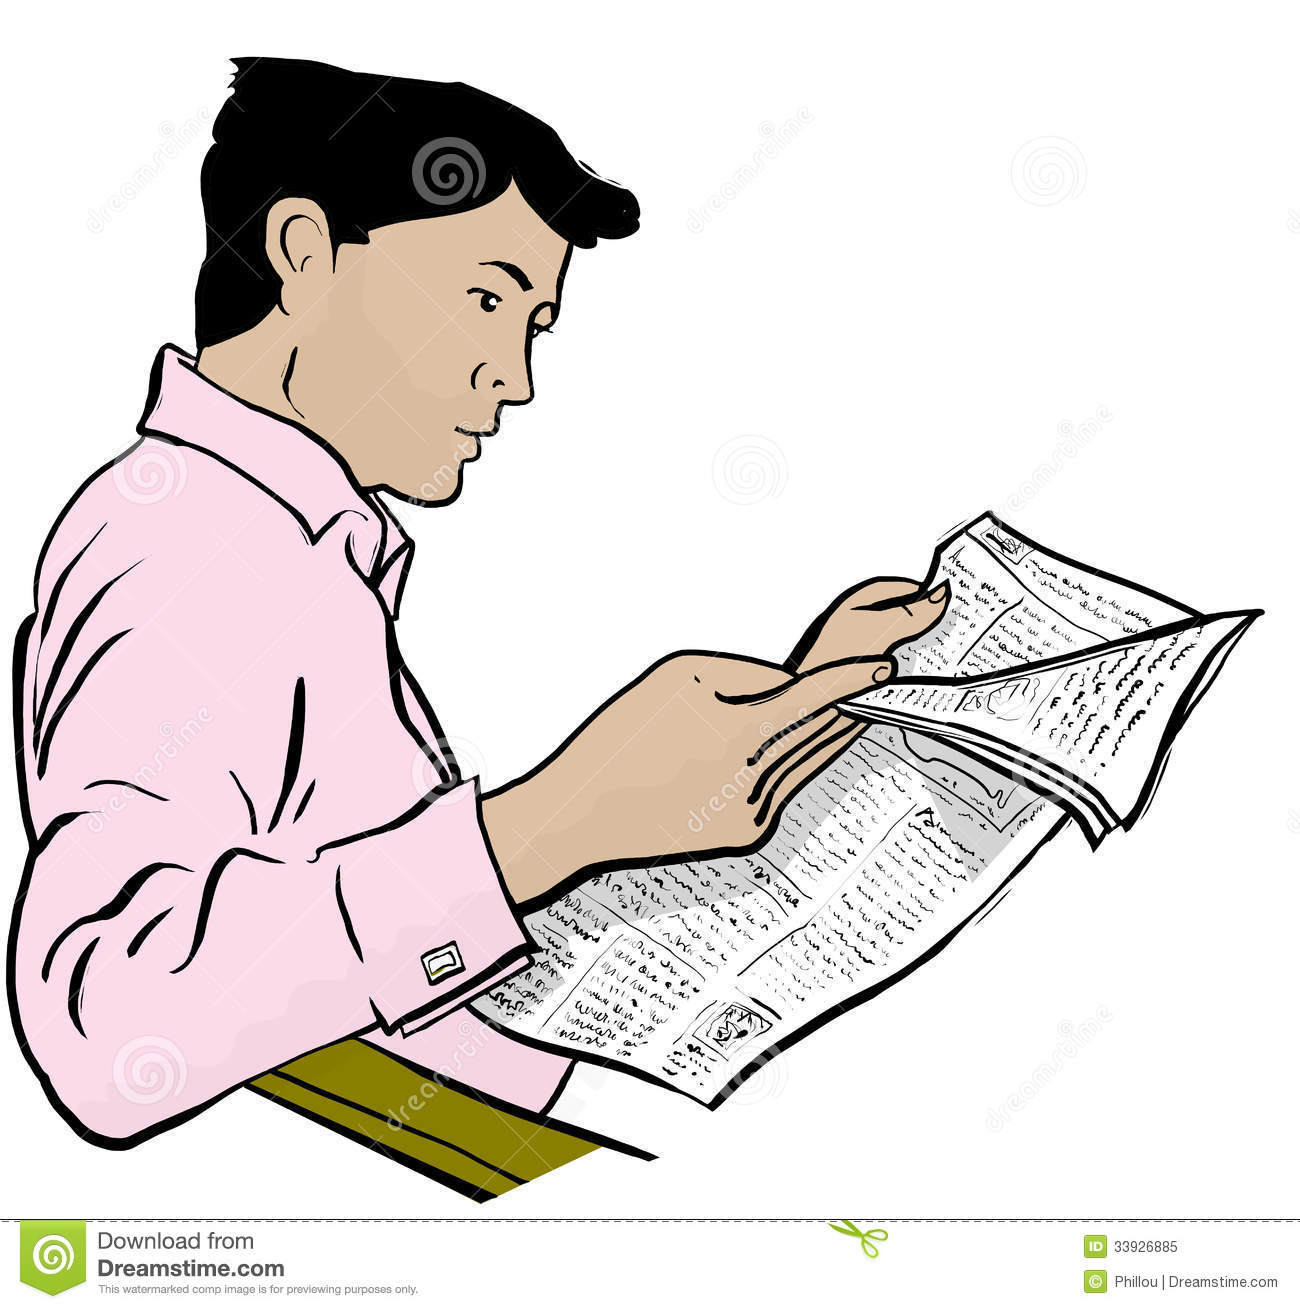 graphic royalty free library Station . Man reading newspaper clipart.